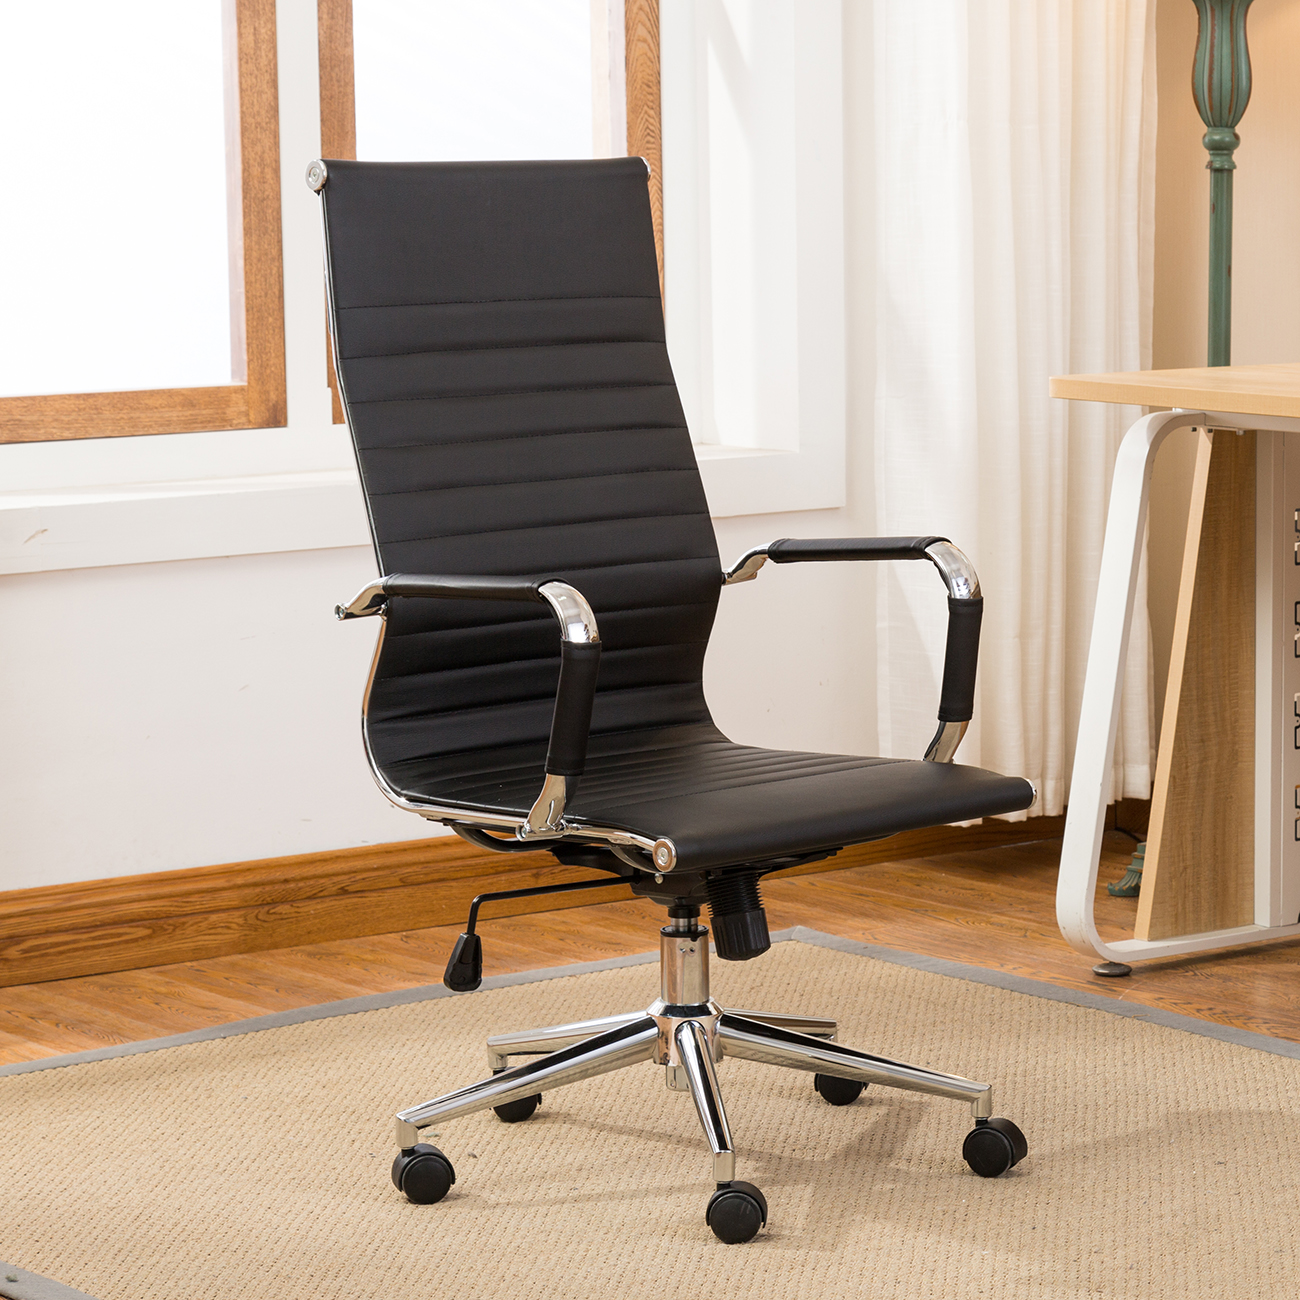 pu leather office chair papasan cushion etsy ergonomic ribbed high back executive computer